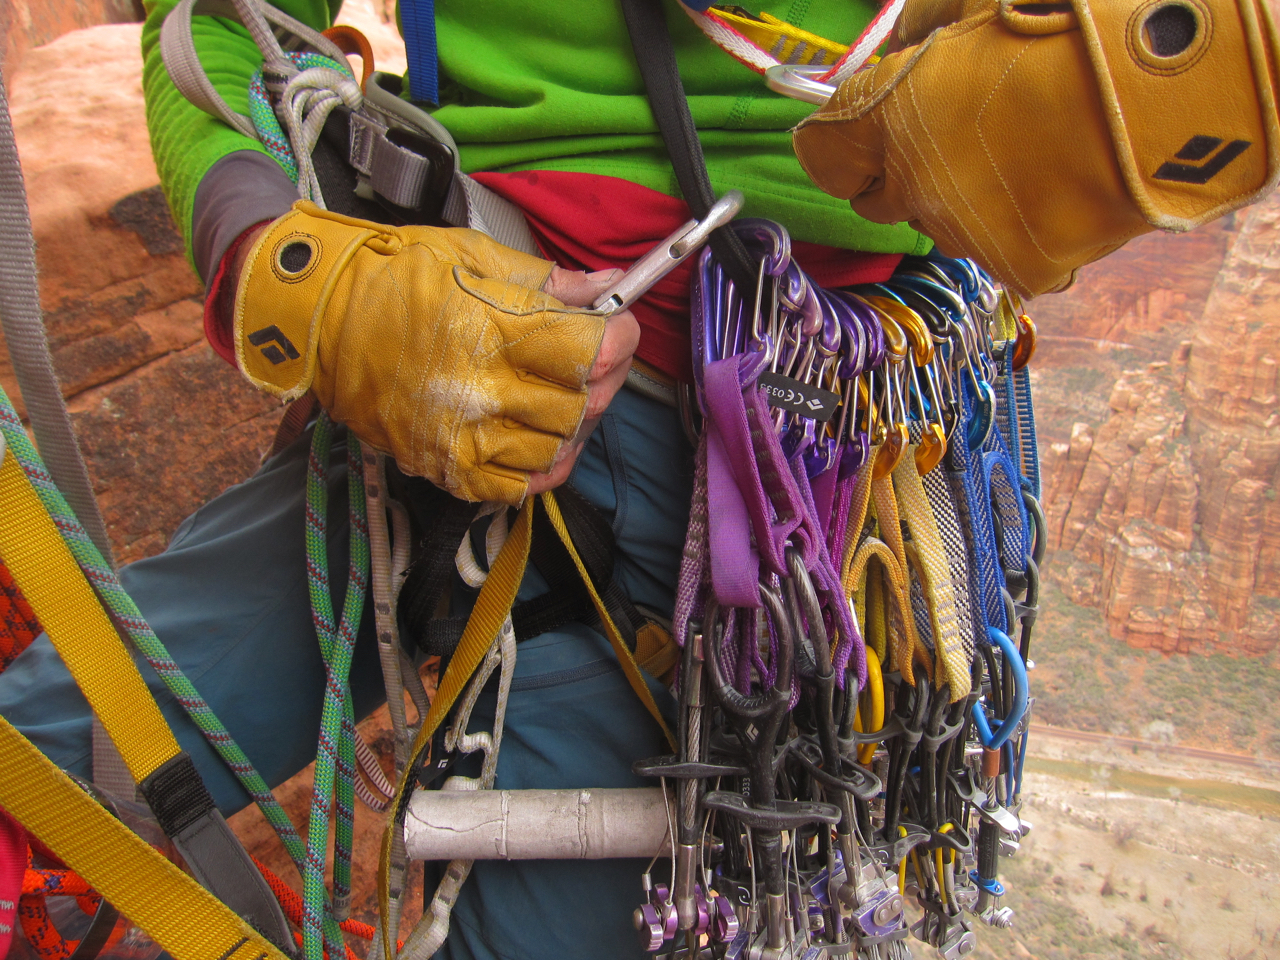 Most of the route is finger sized cracks and has very secure placements. No matter how much gear your bring, you will need to leapfrog placements.  We brought 9 0.5 purple camalots (or equivalent). We could have got by with fewer, but we used them all. Bring plenty of 0.4 and 0.75 sized cams too.